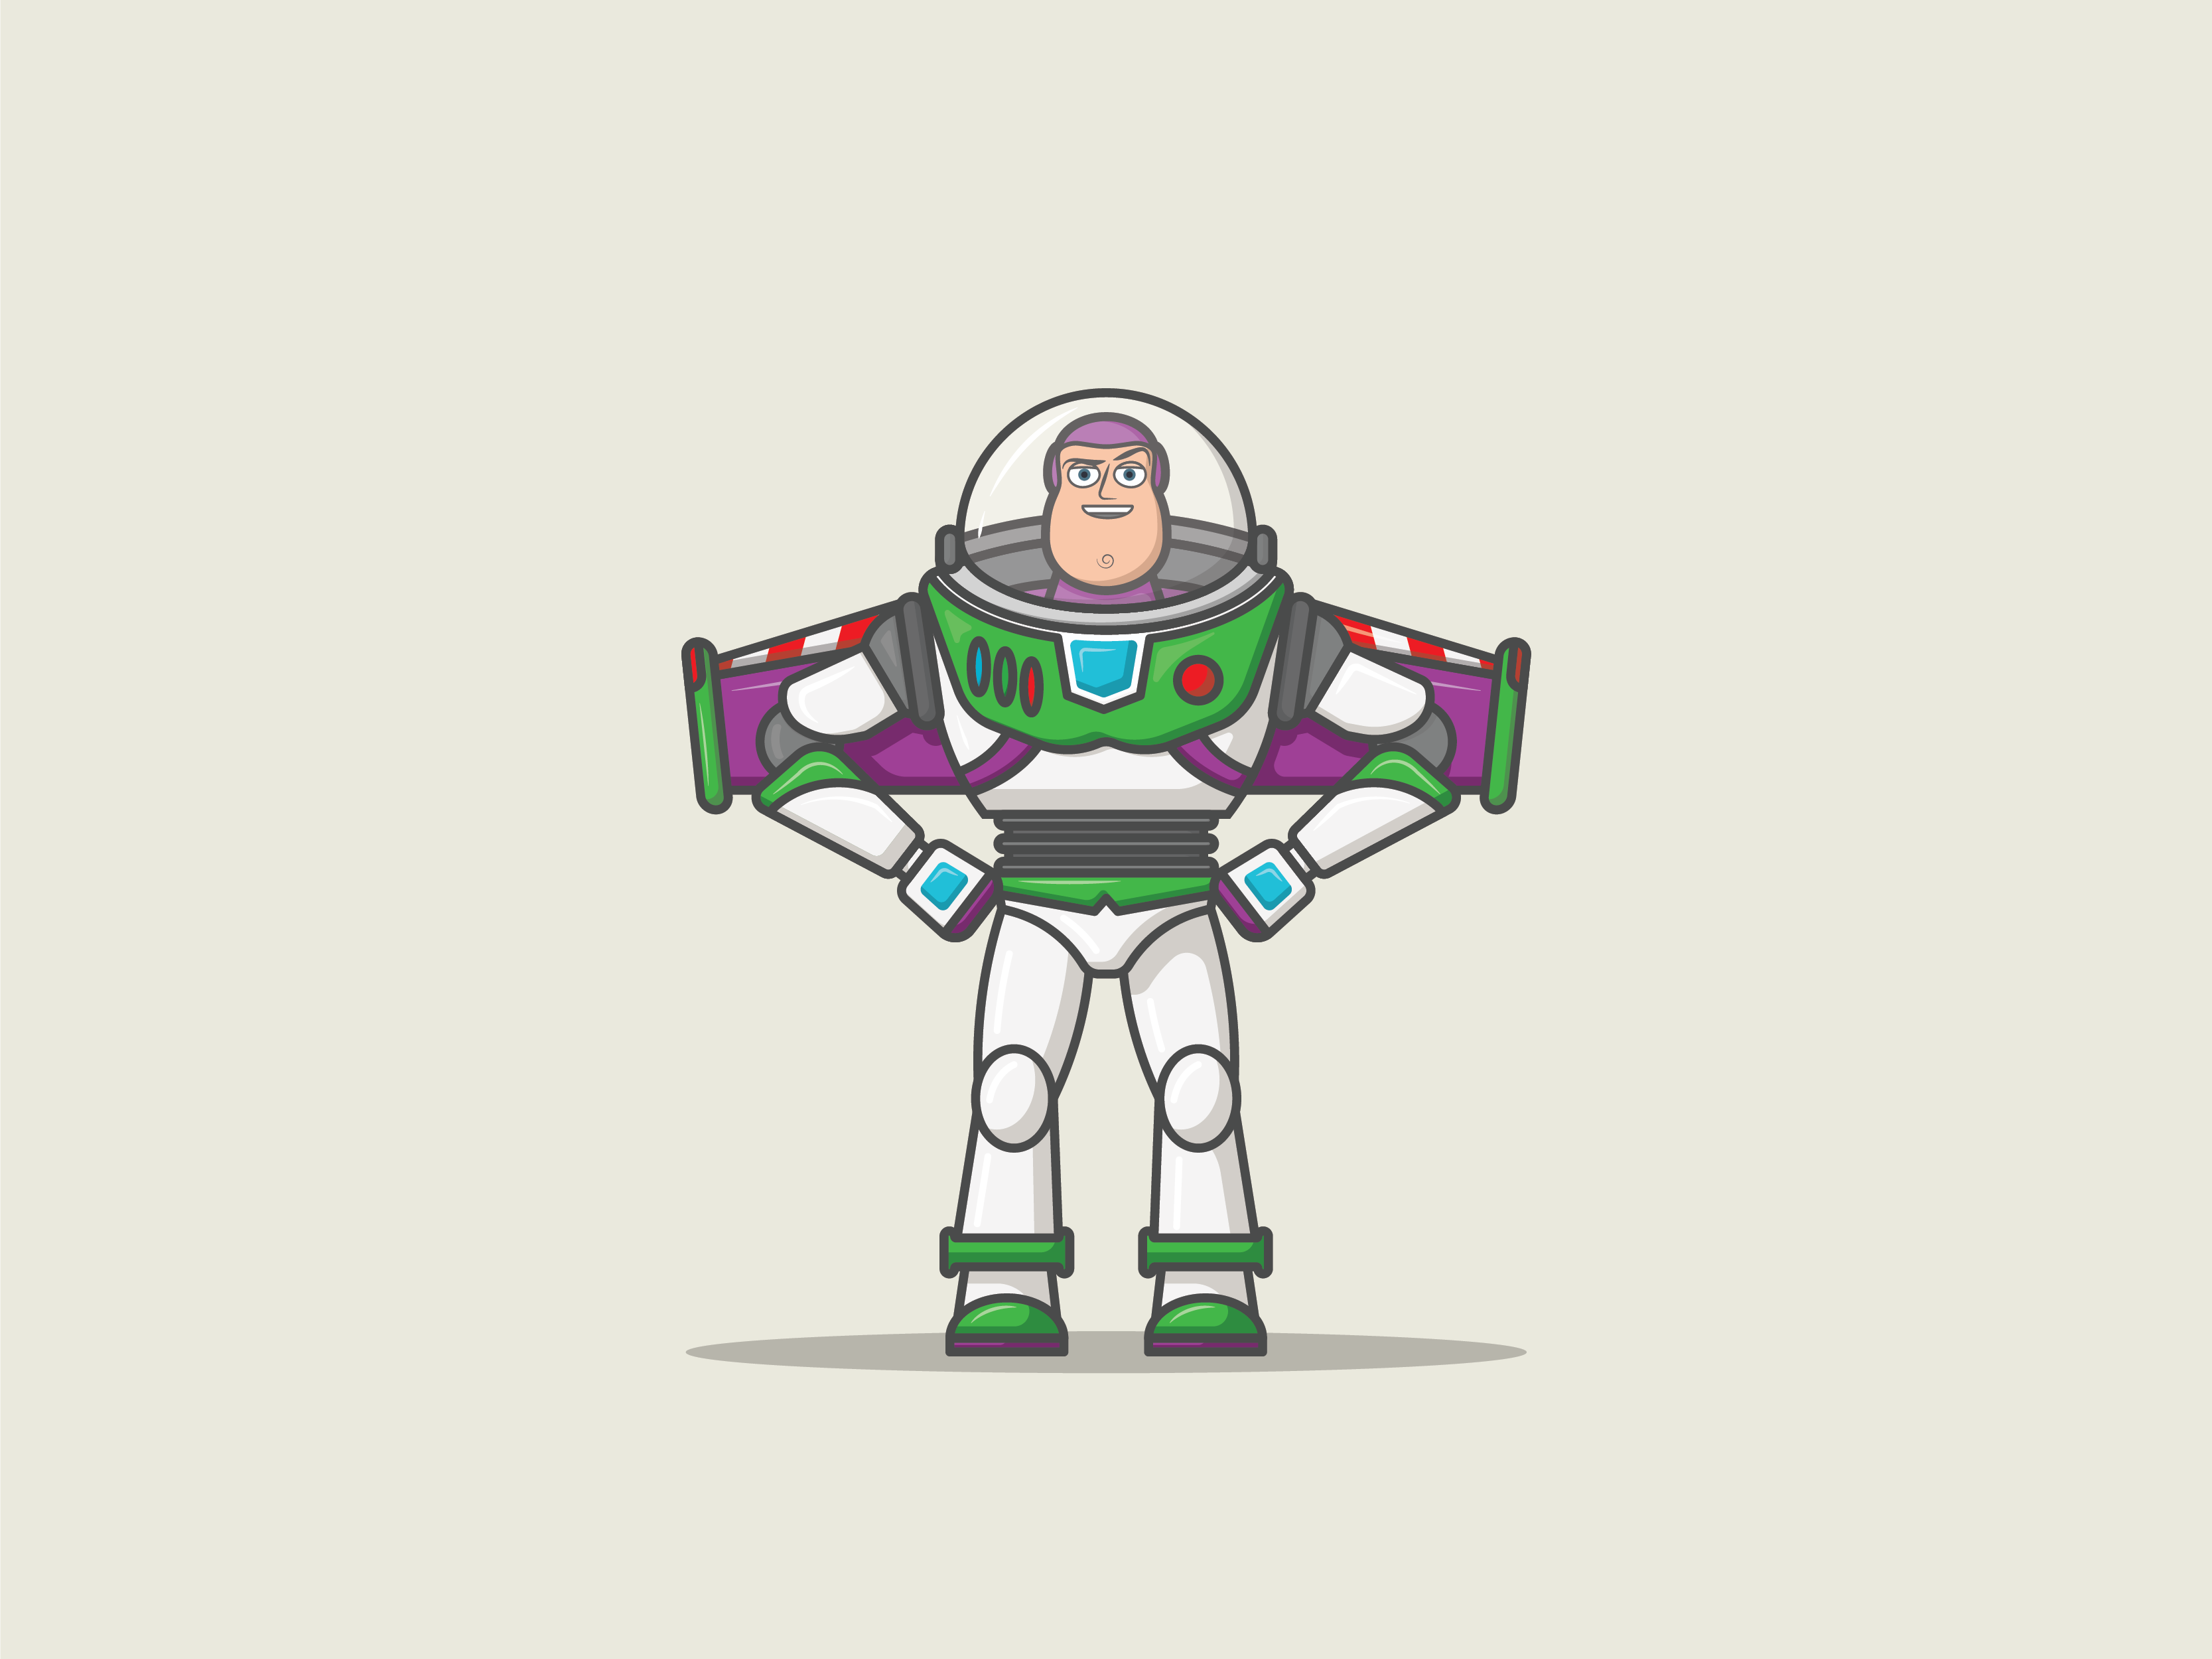 2019 Movie Releases | Toy Story 4 by Stephen Johnson on Dribbble